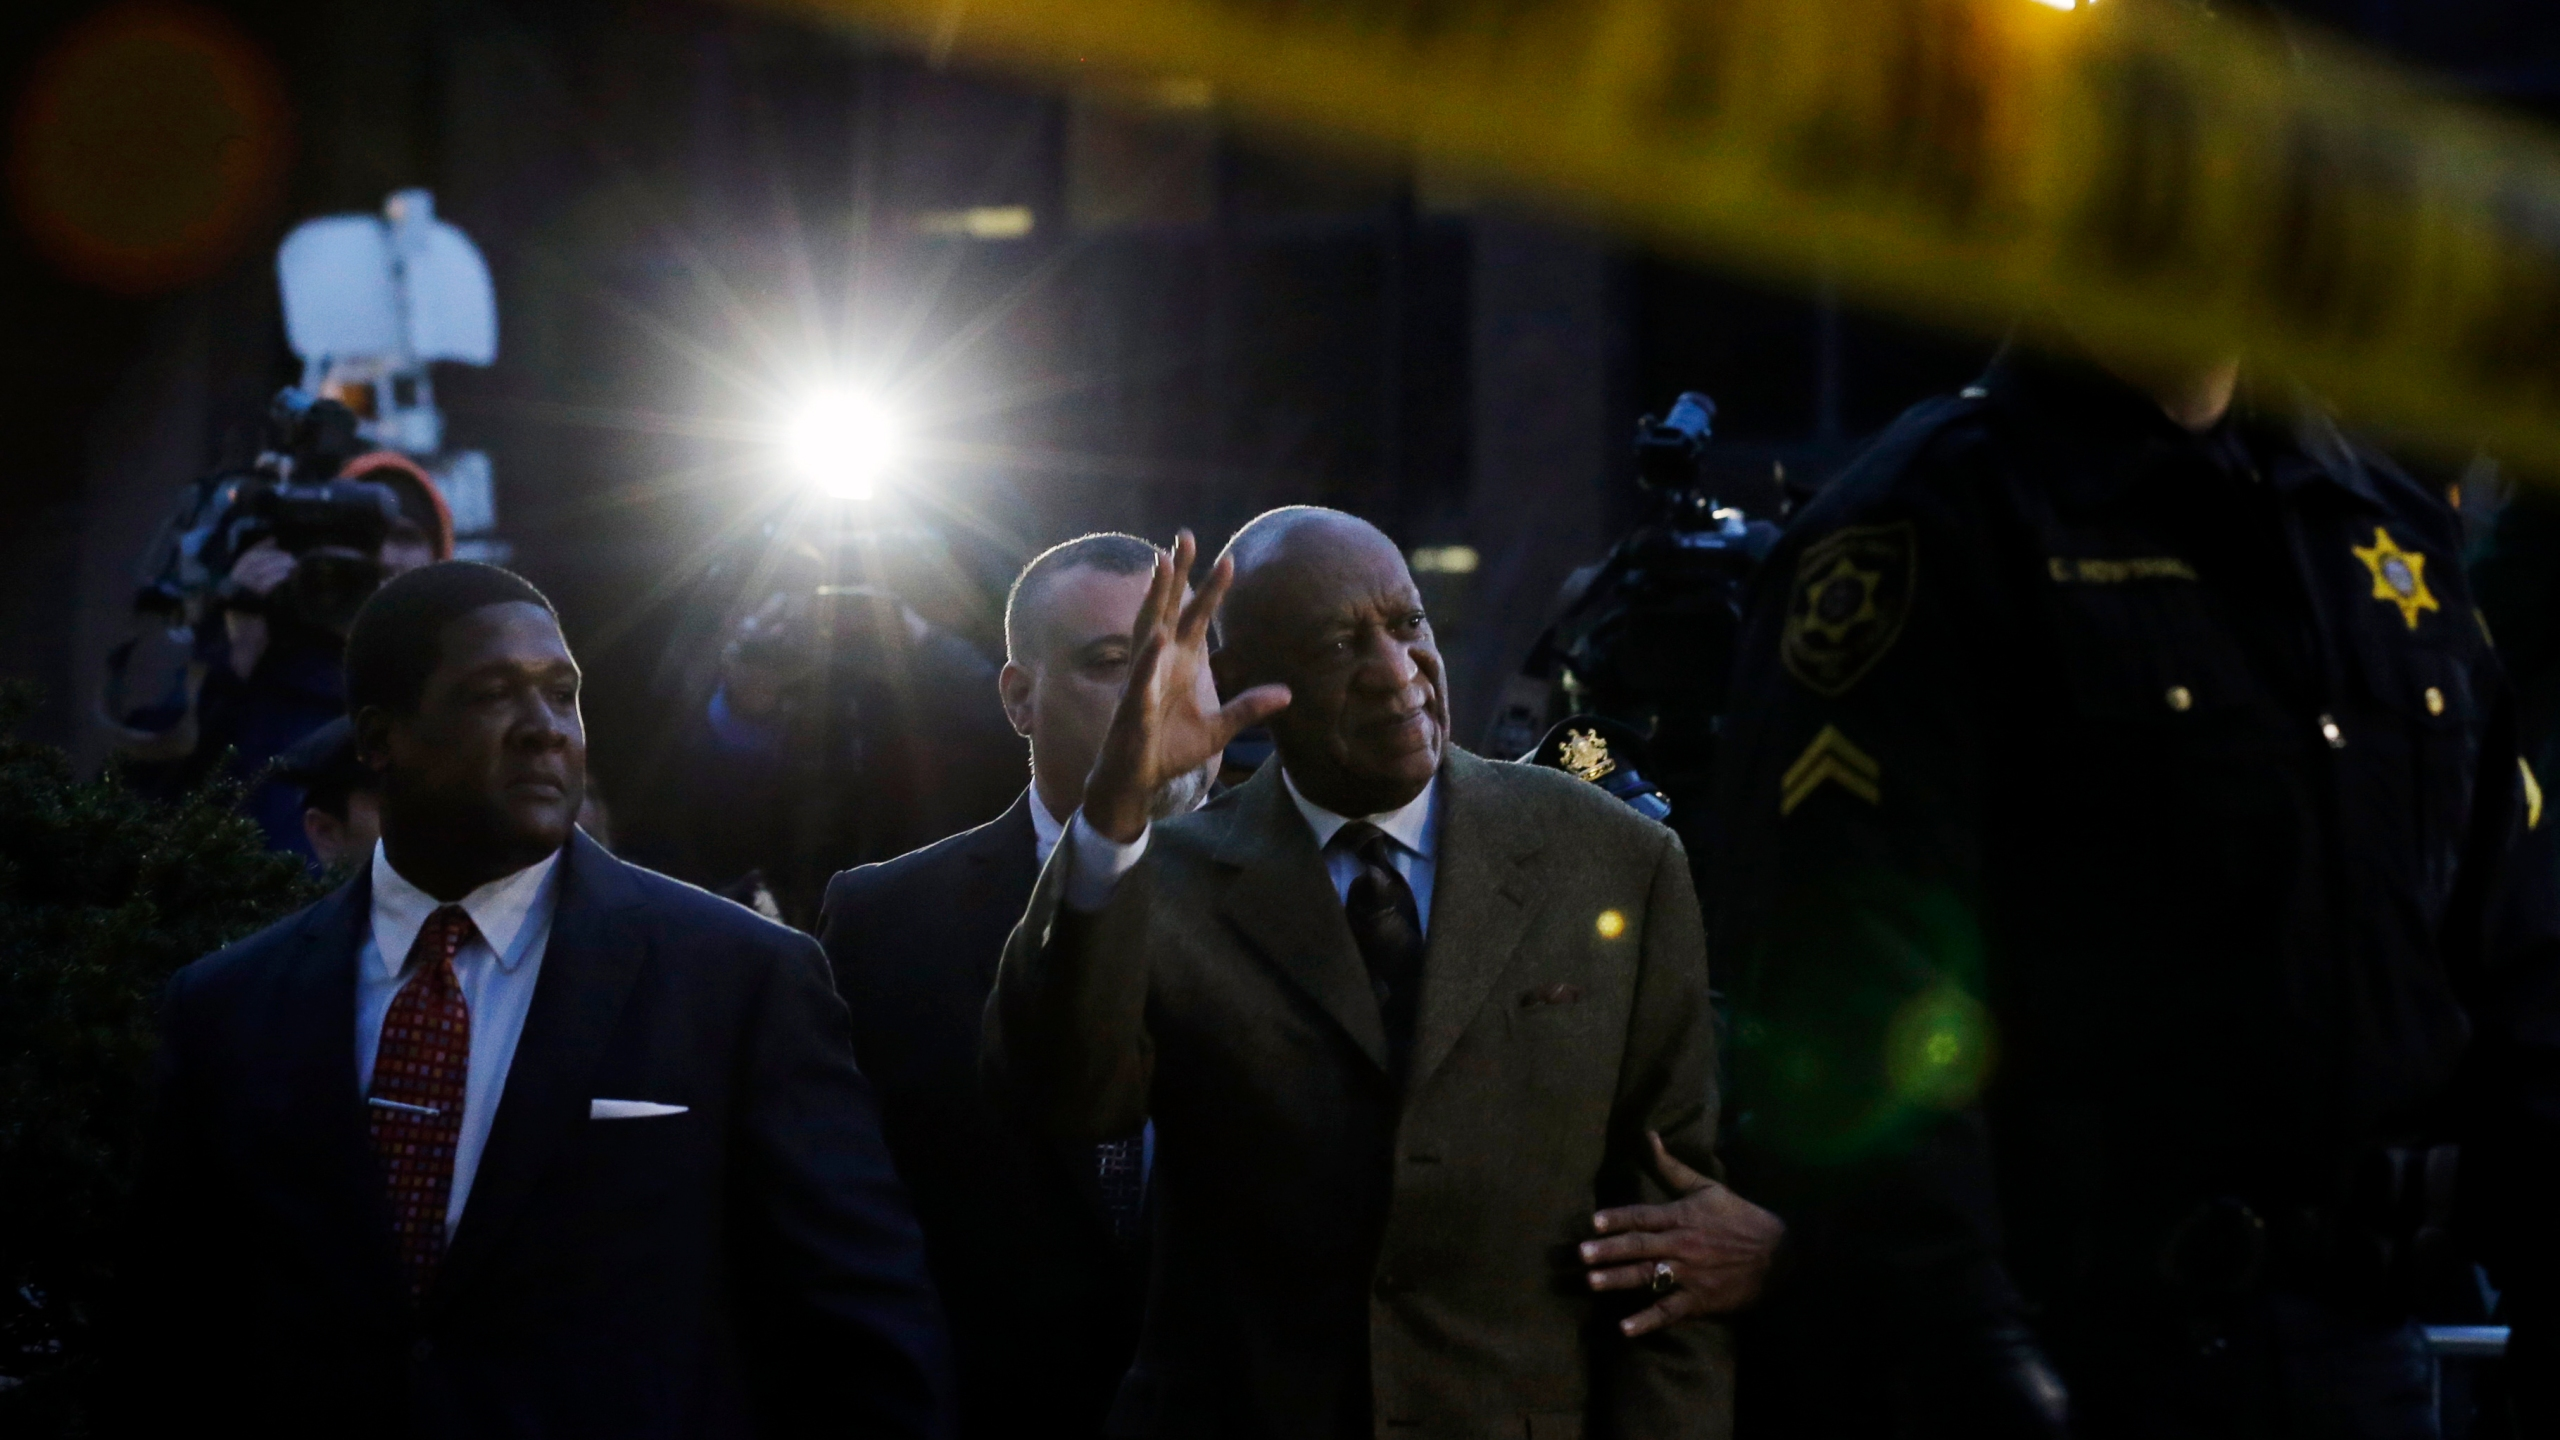 Cosby Citing Systemic Racism As He Fights Assault Conviction Wwlp